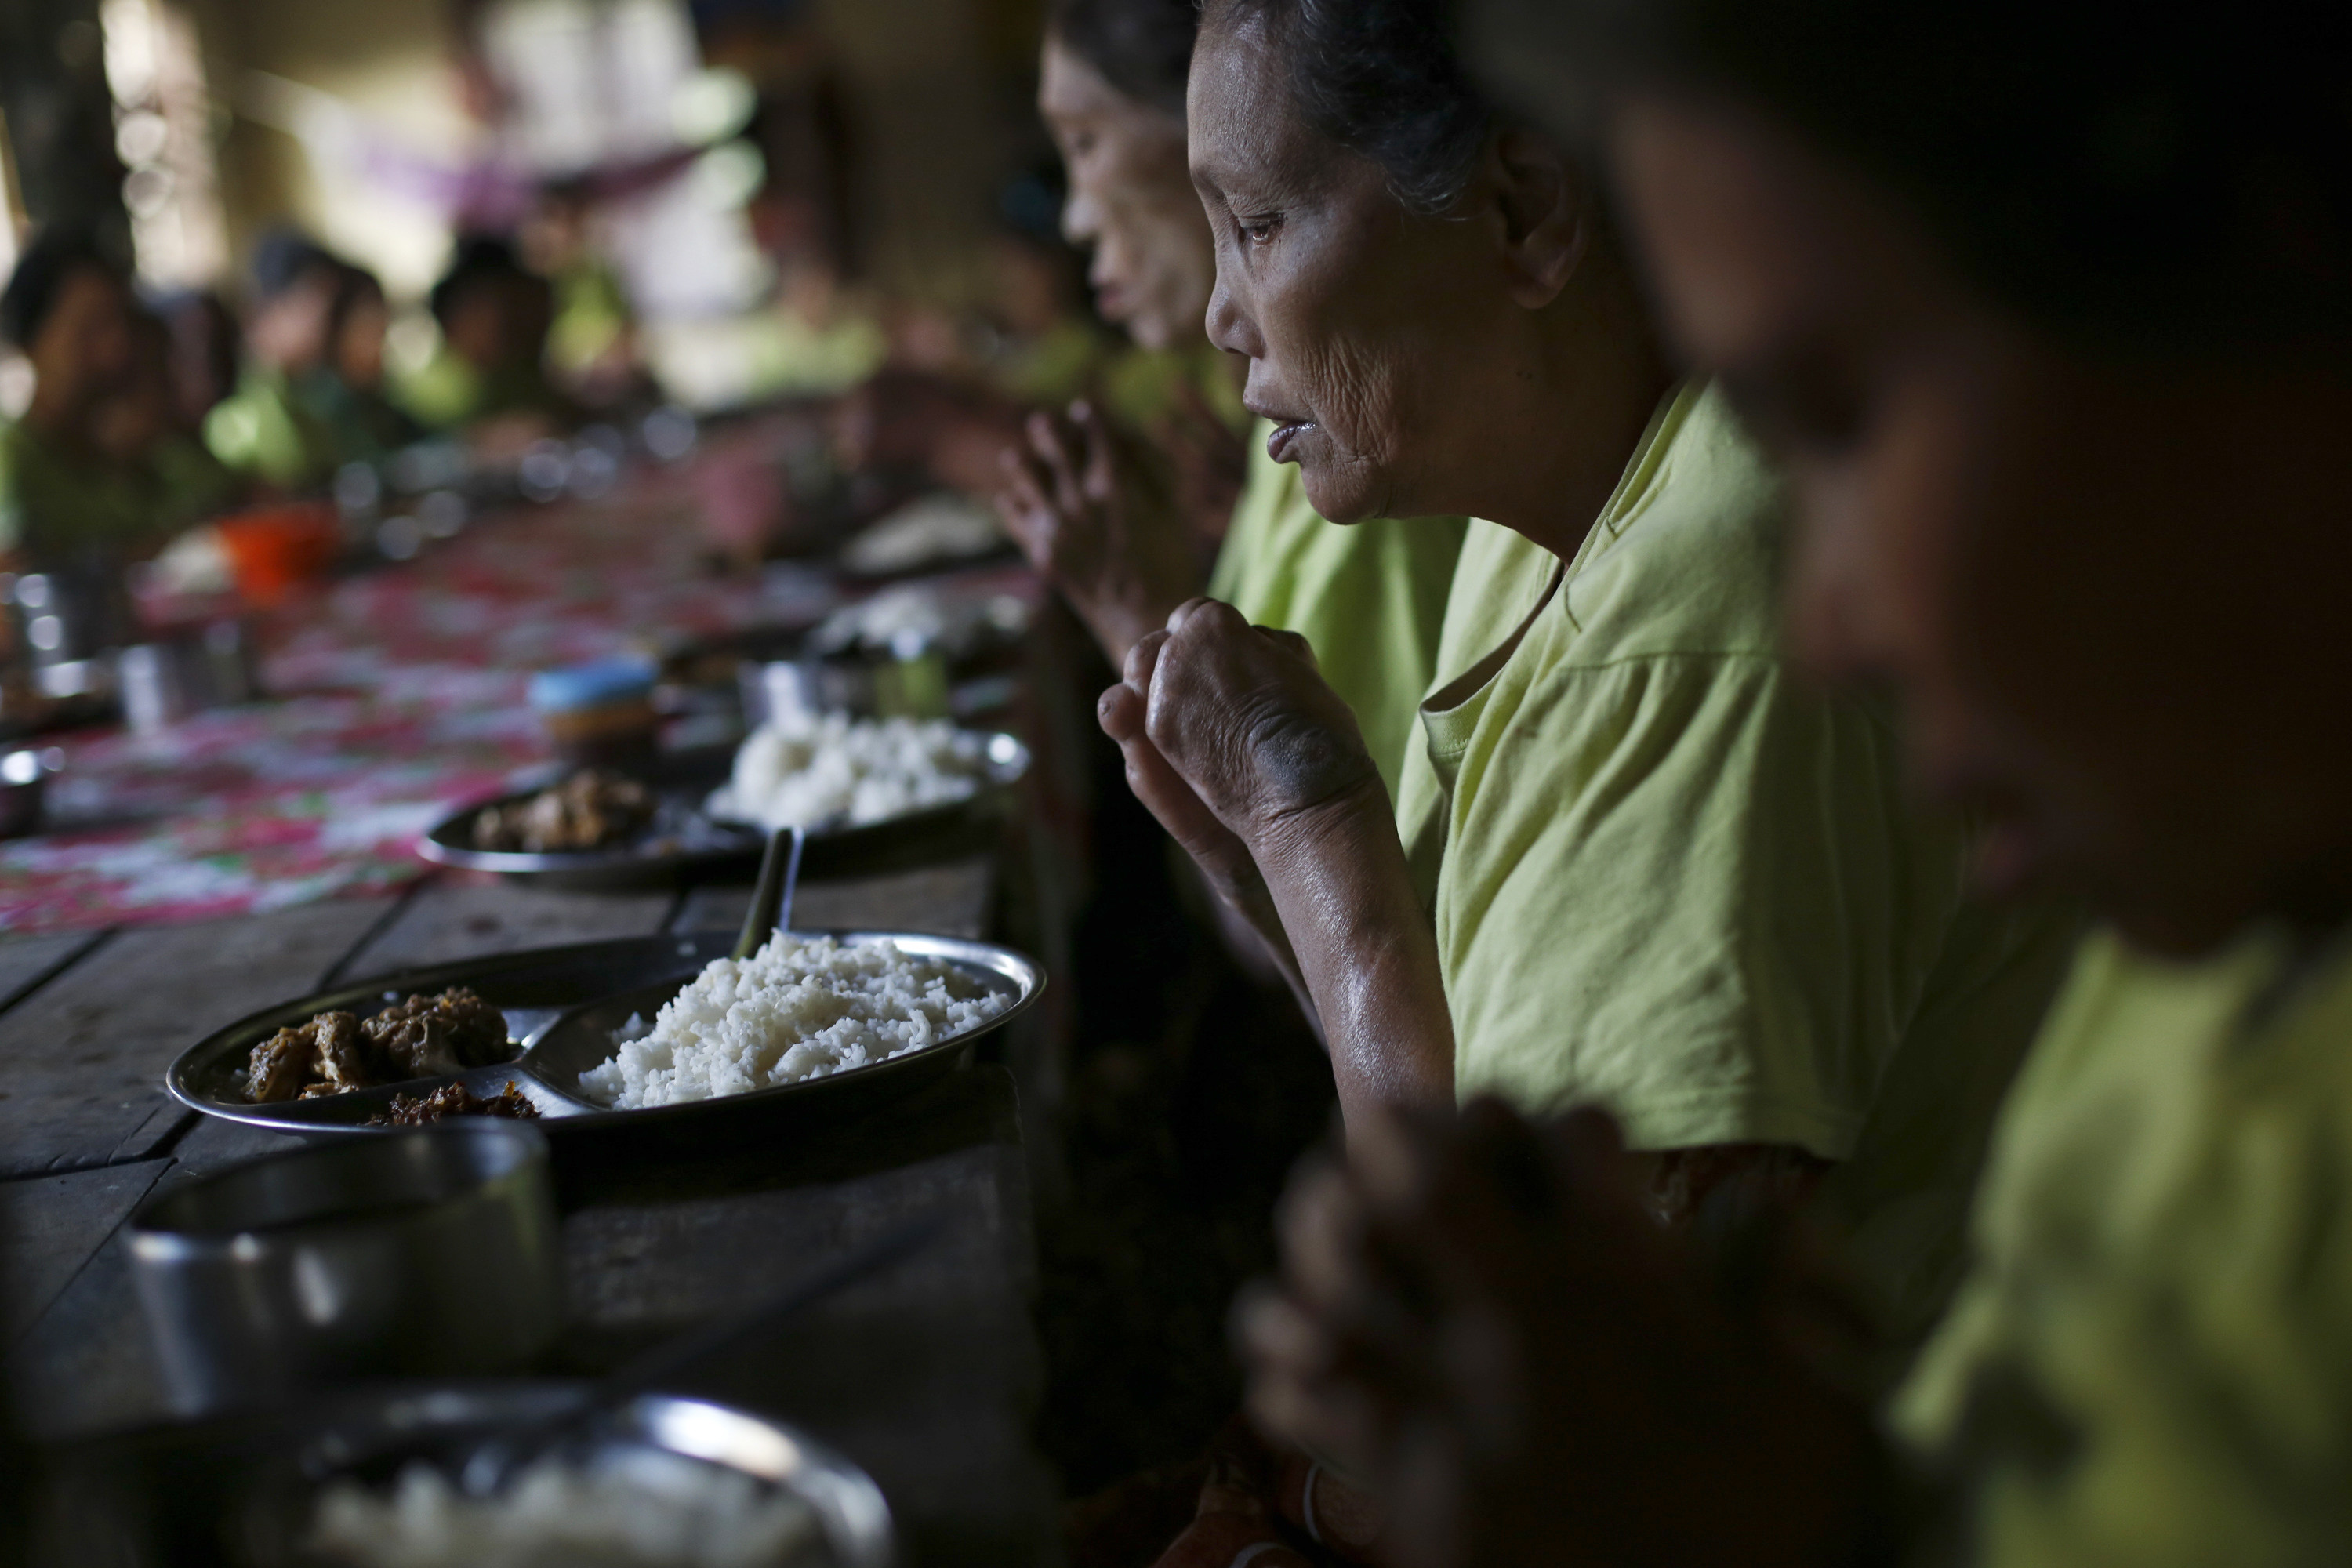 Patients pray for donors before they eat their meal at Mayanchaung Leprosy Hospice, Halegu township. Yangon Division January 21, 2014. The hospice was founded in 1989 and houses 118 people. About 3,000 people are newly diagnosed with leprosy in Myanmar every year and about 300,000 people have been cured of the disease since 1991, according to the Myanmar Leprosy Mission. Picture taken January 21, 2014.